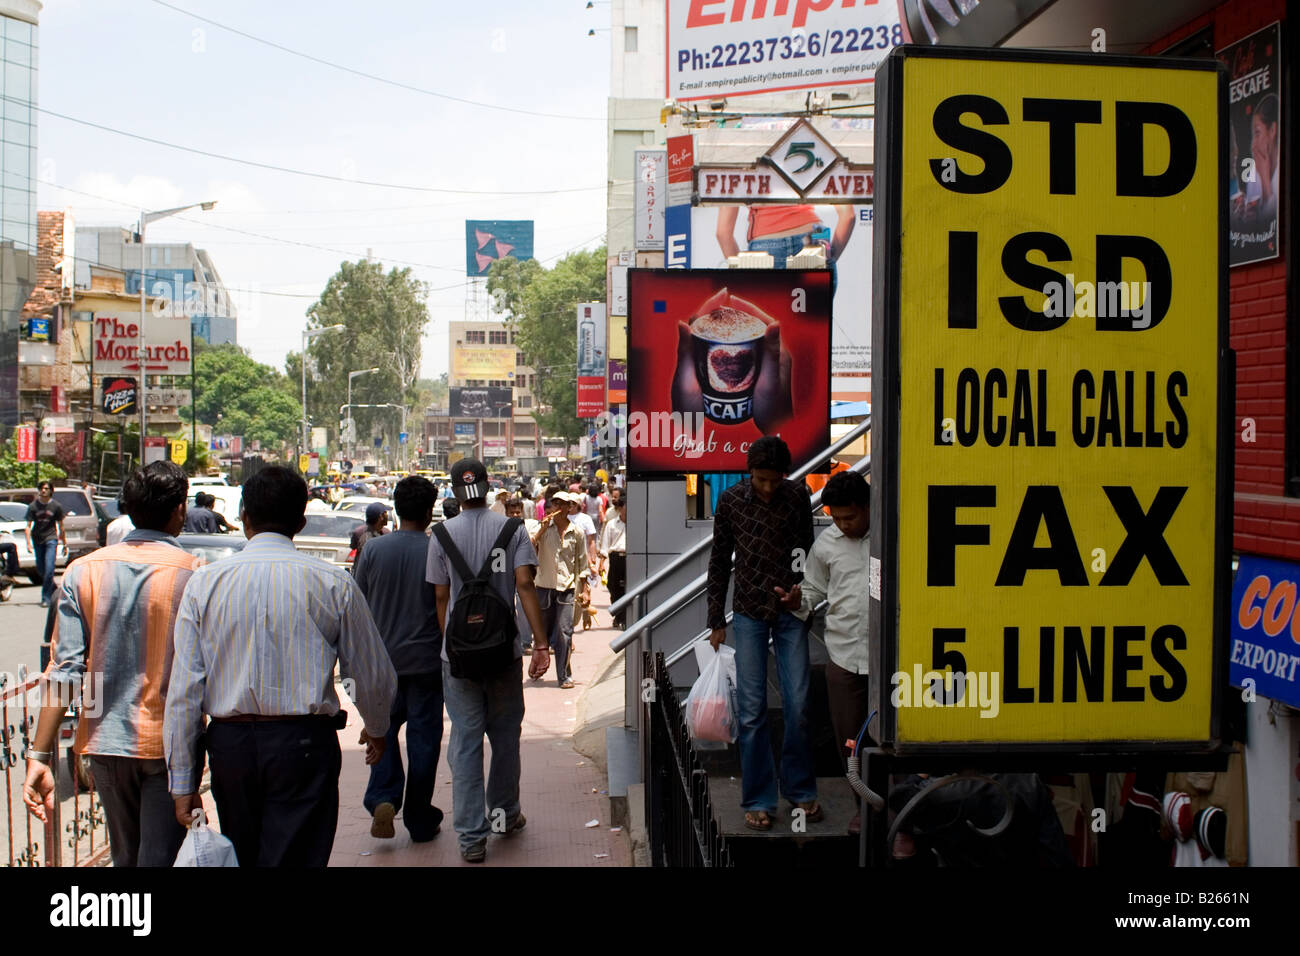 A busy street in Bangalore. People walk on Brigade Road while a sign advertises public telephone facilities. - Stock Image